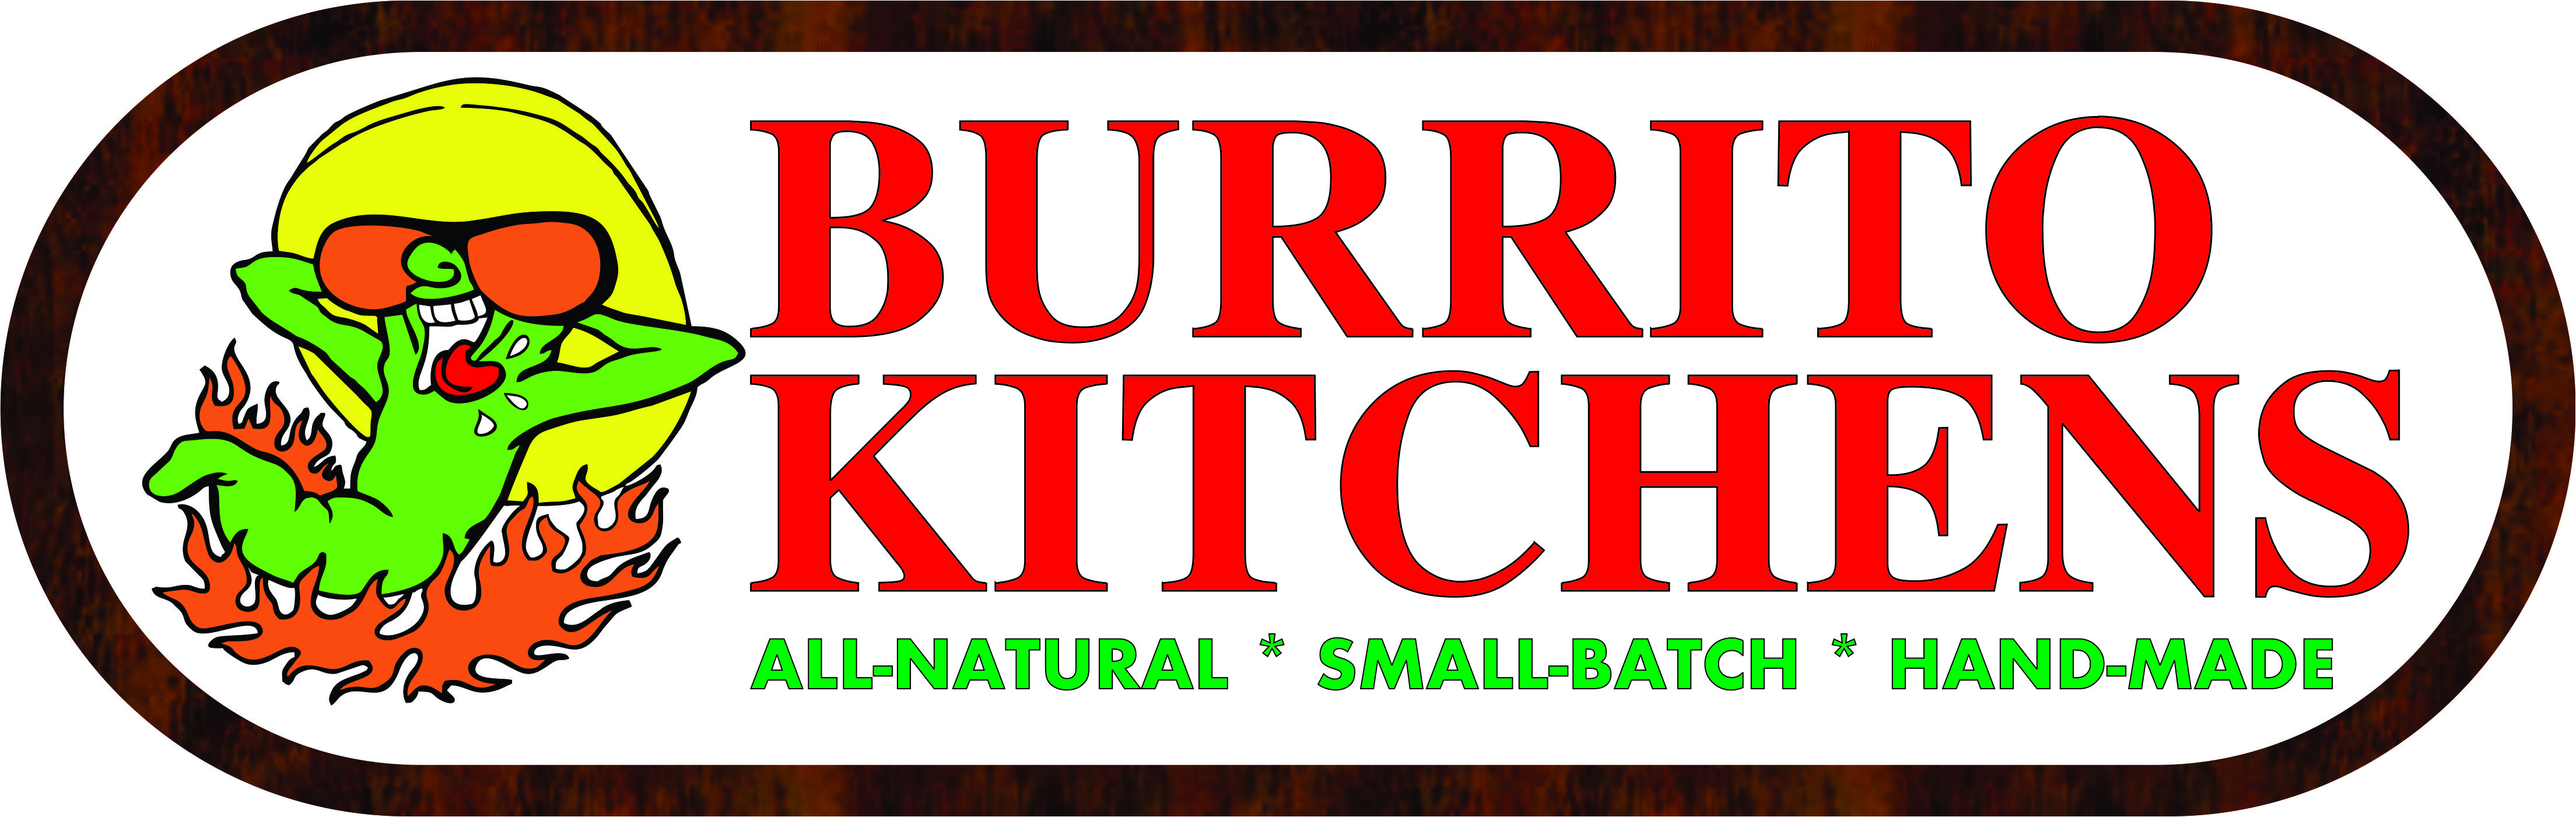 Burrito Kitchens